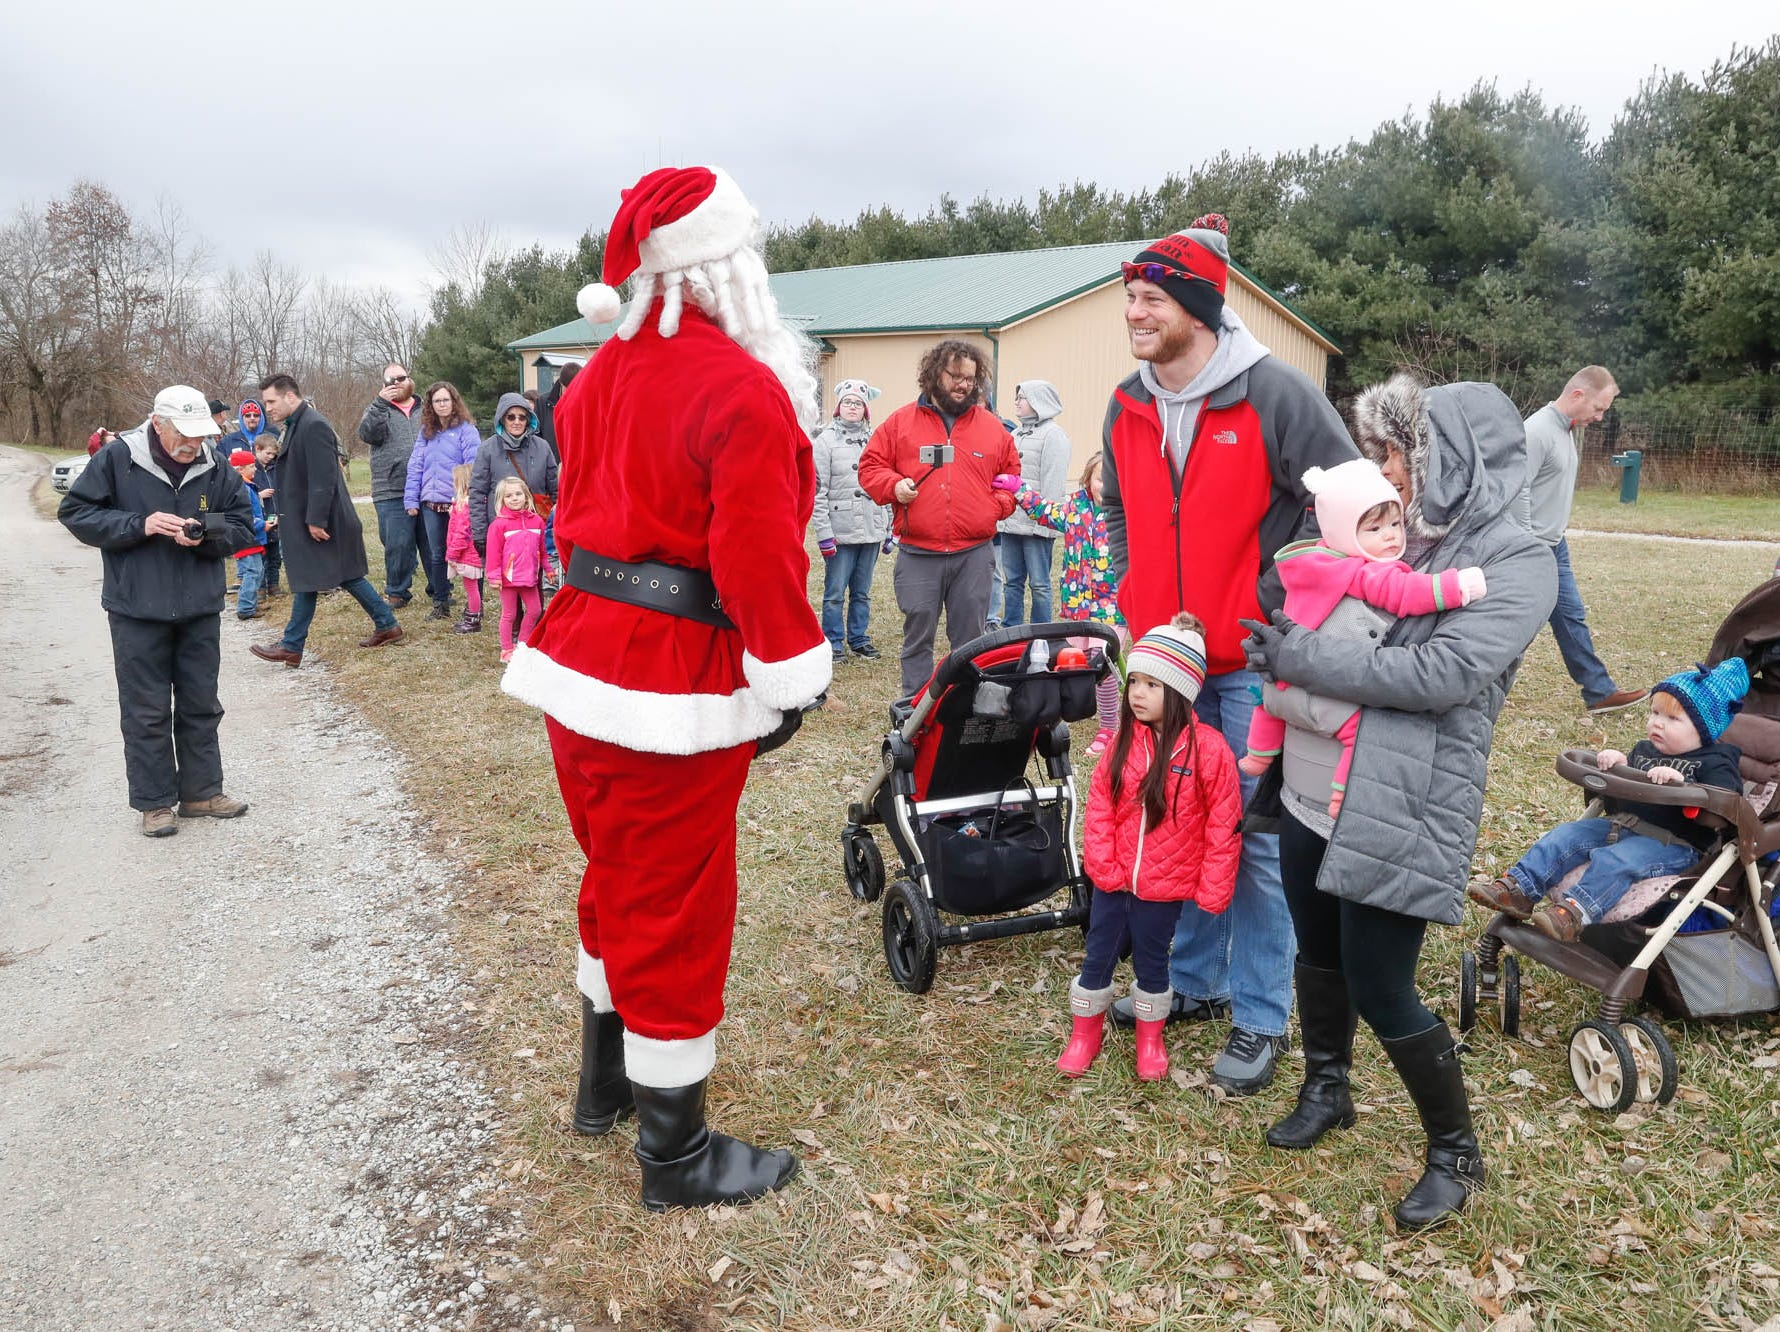 Santa meets guests during his annual visit to Wolf Park in Battle Ground Indiana on Saturday, Dec. 15, 2018.